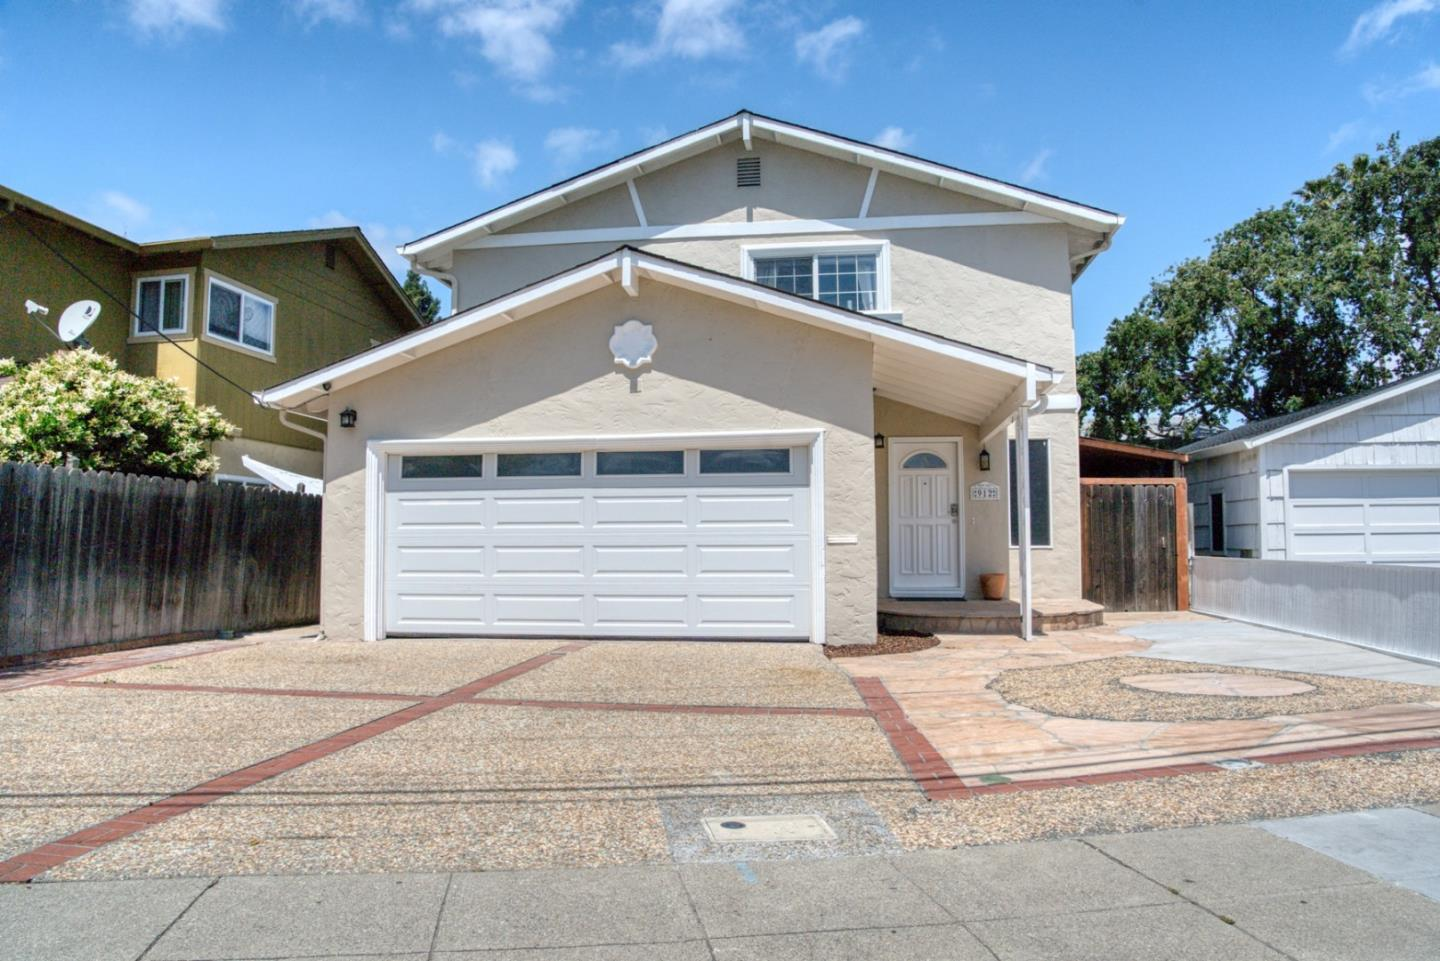 912 Palm AVE, Redwood City, California